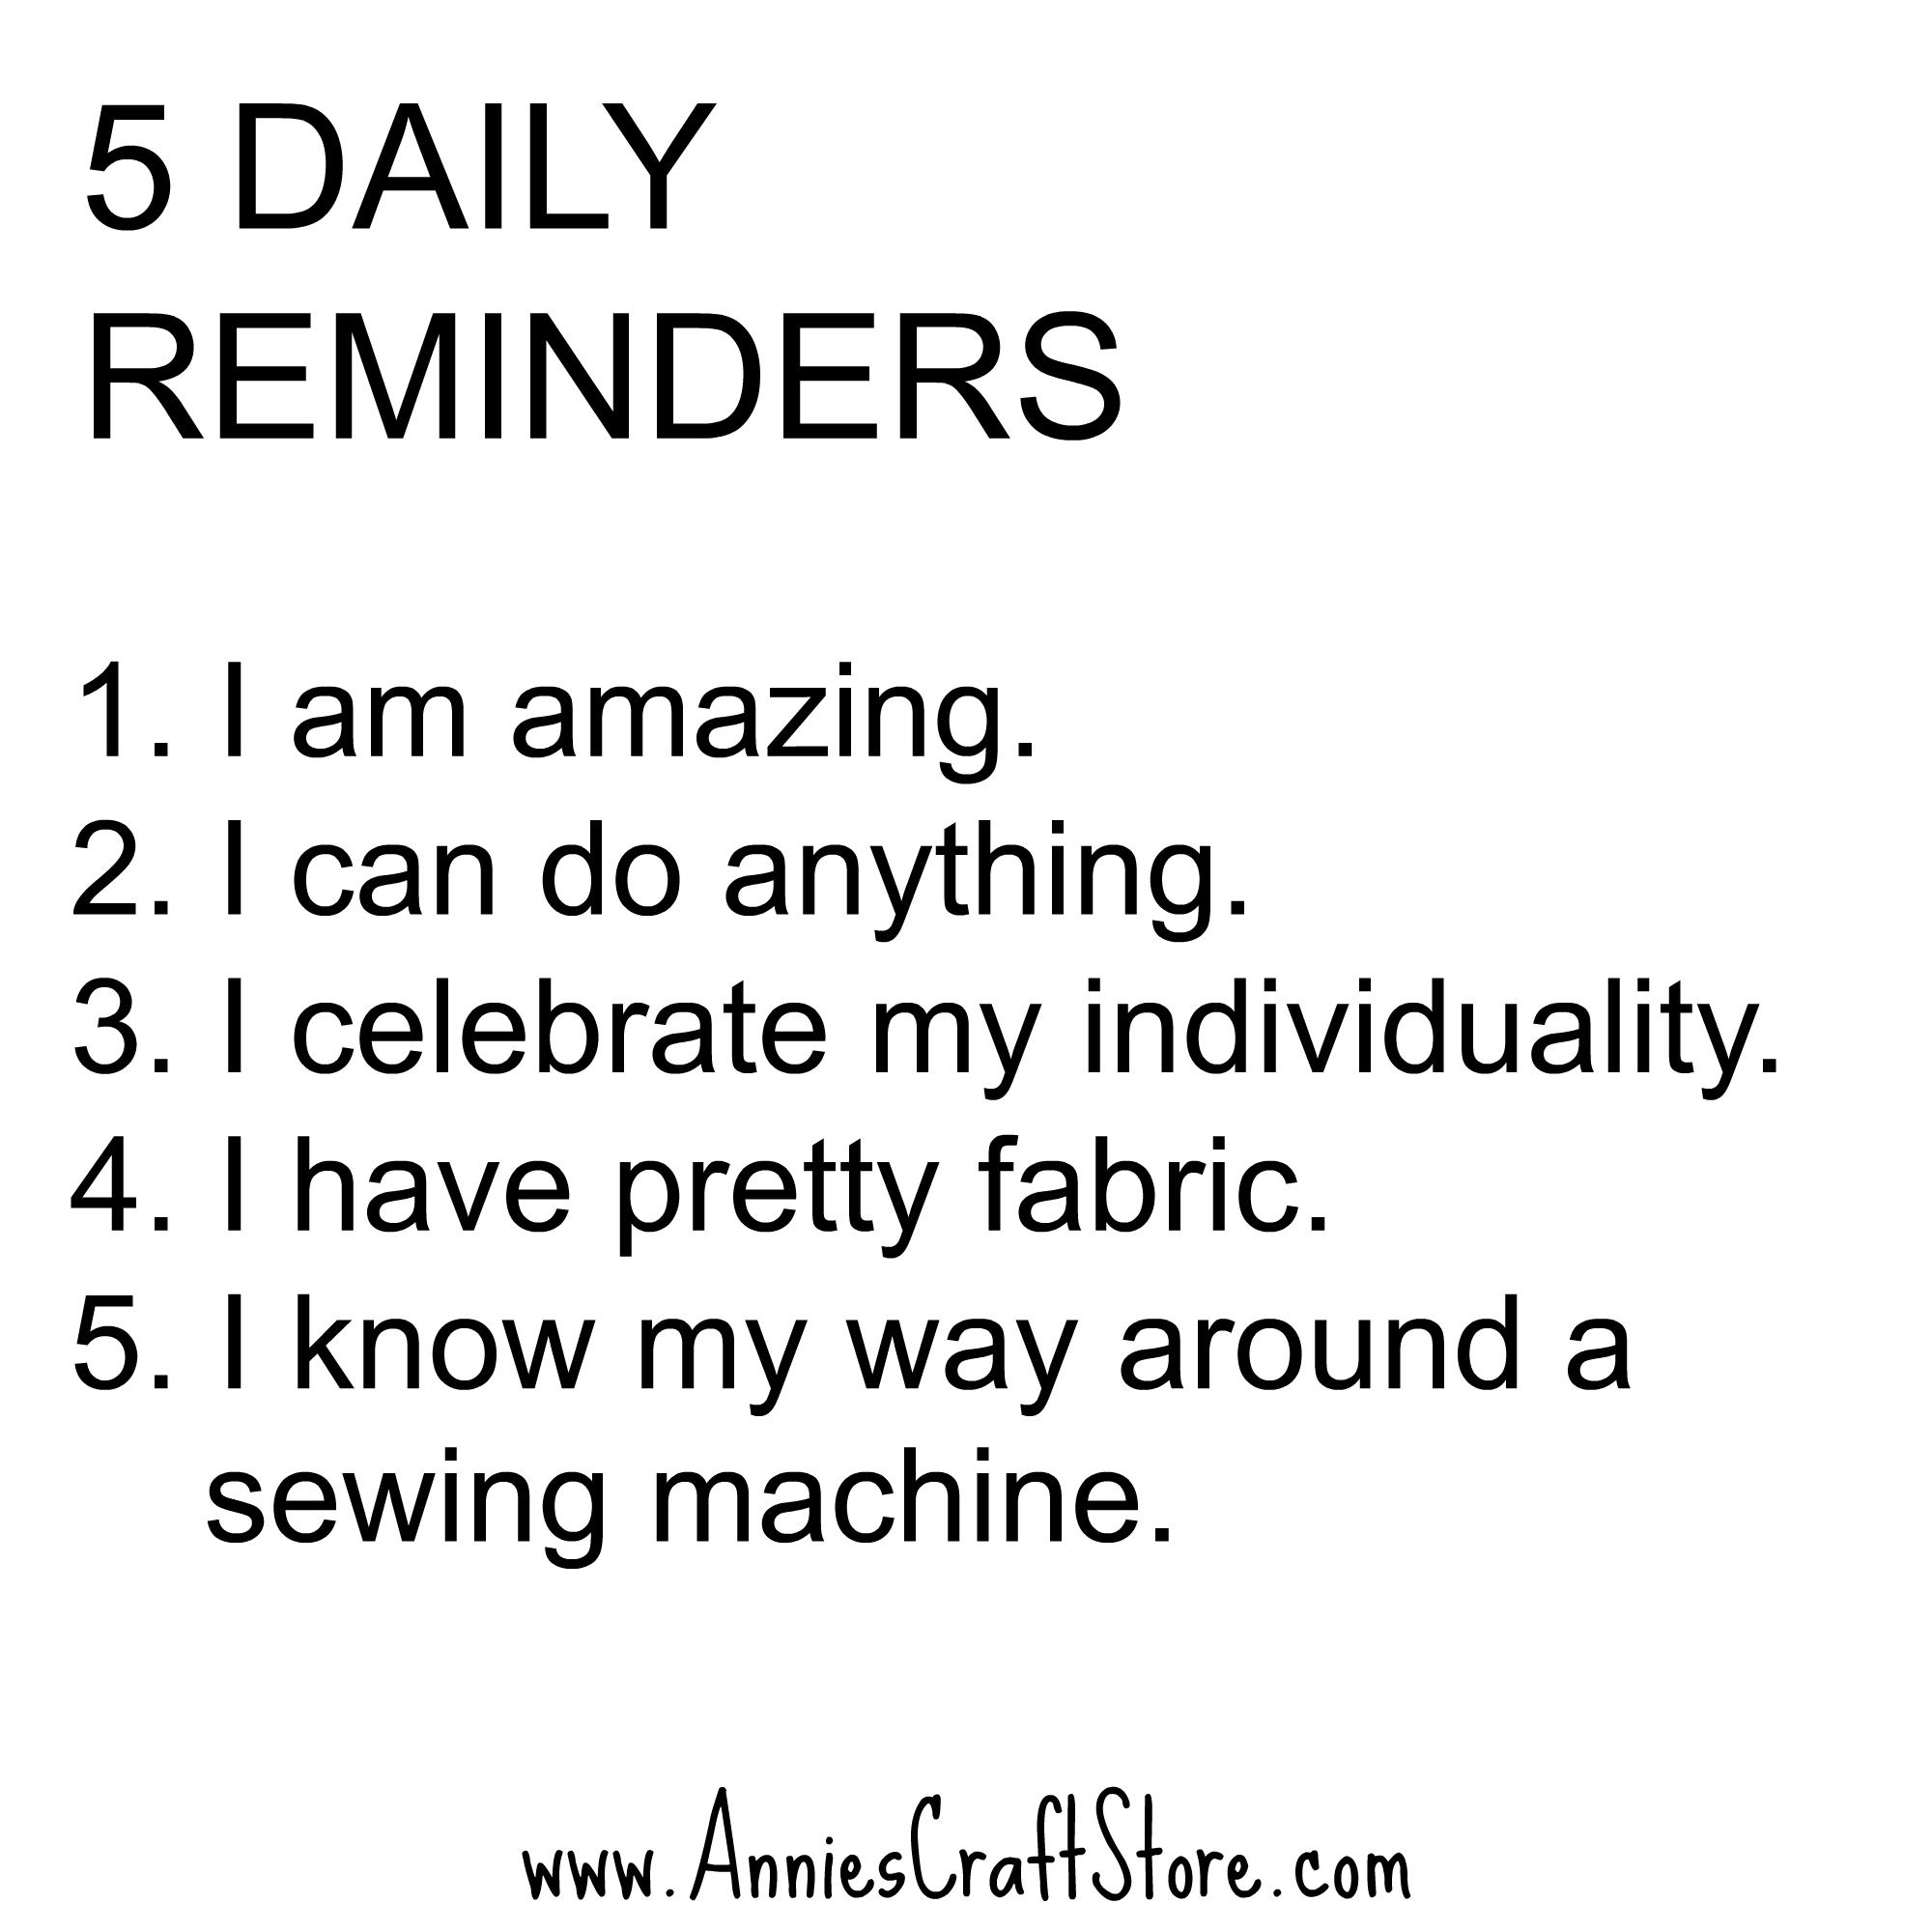 5 Daily Reminders for quilters